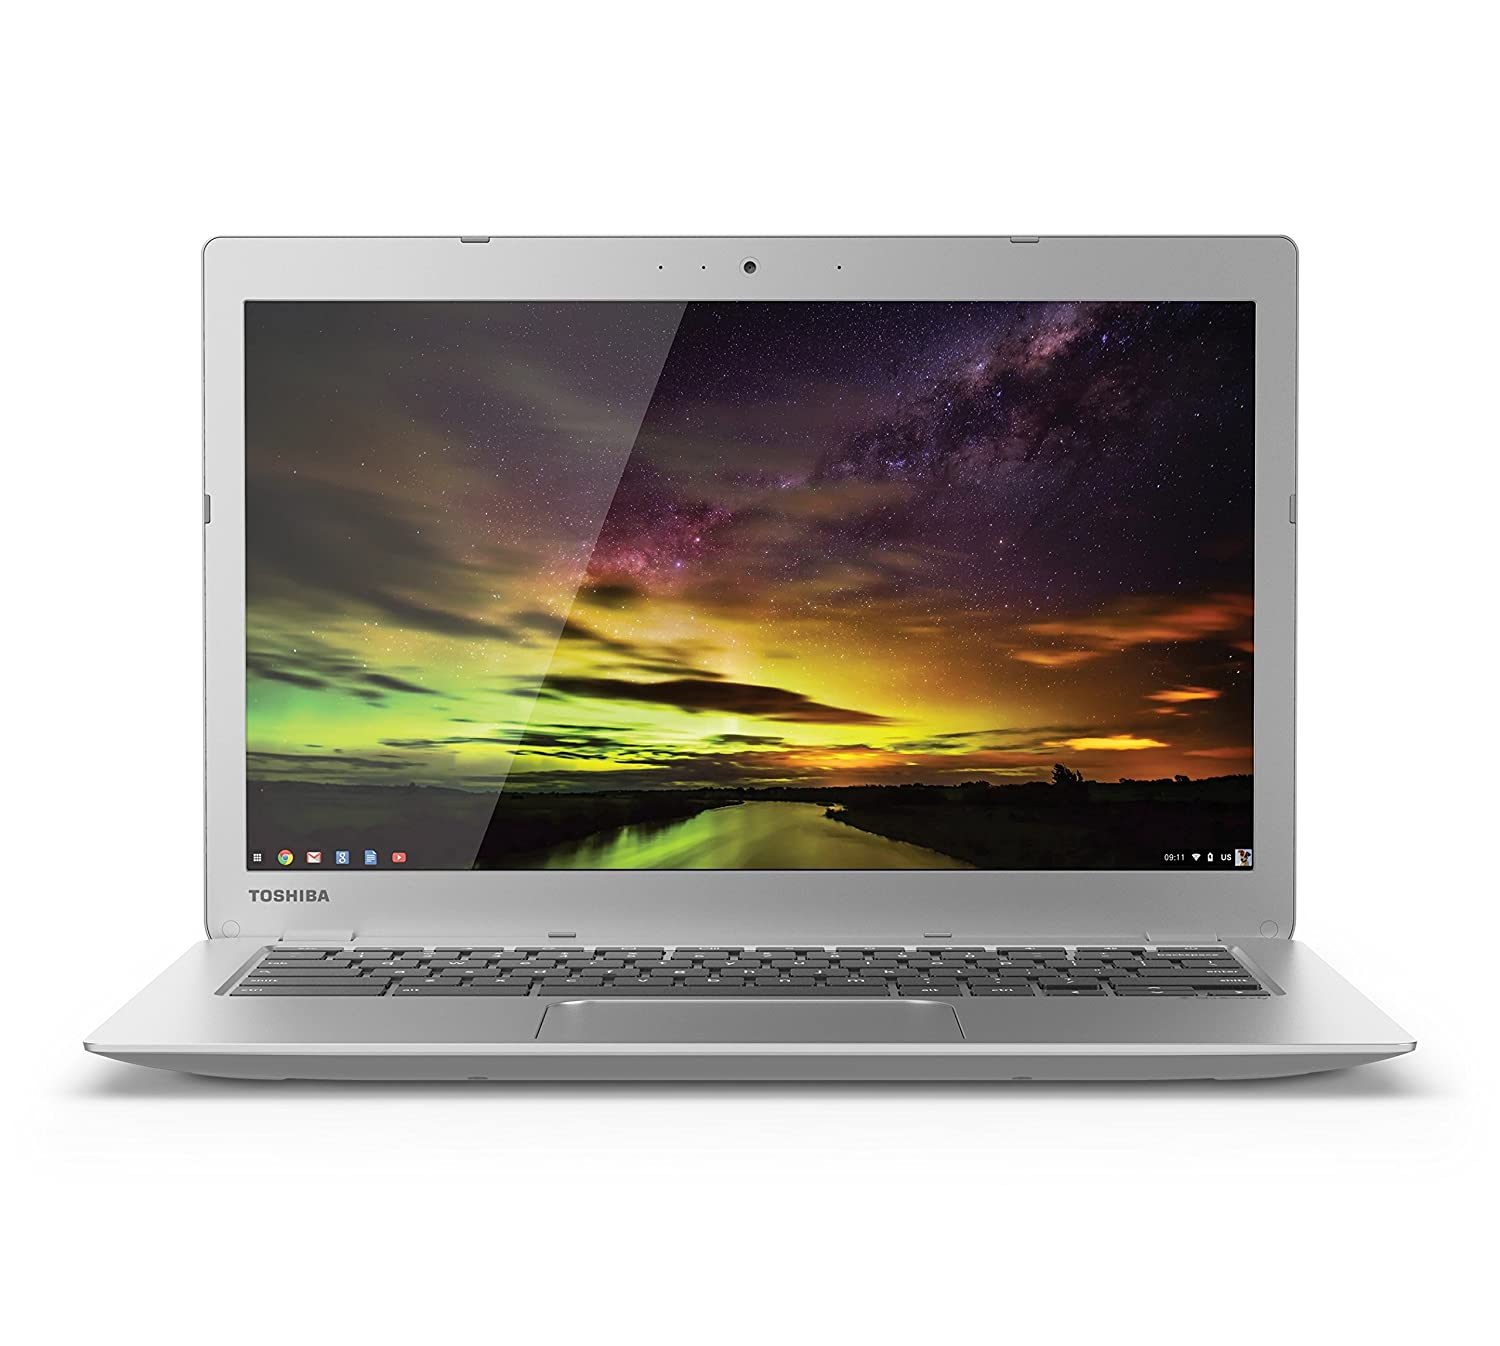 Amazon.com: Toshiba CB35-B3340 13.3 Inch Chromebook (Intel Celeron, 4GB,  16GB SSD, Silver) Full HD-Screen: Computers & Accessories